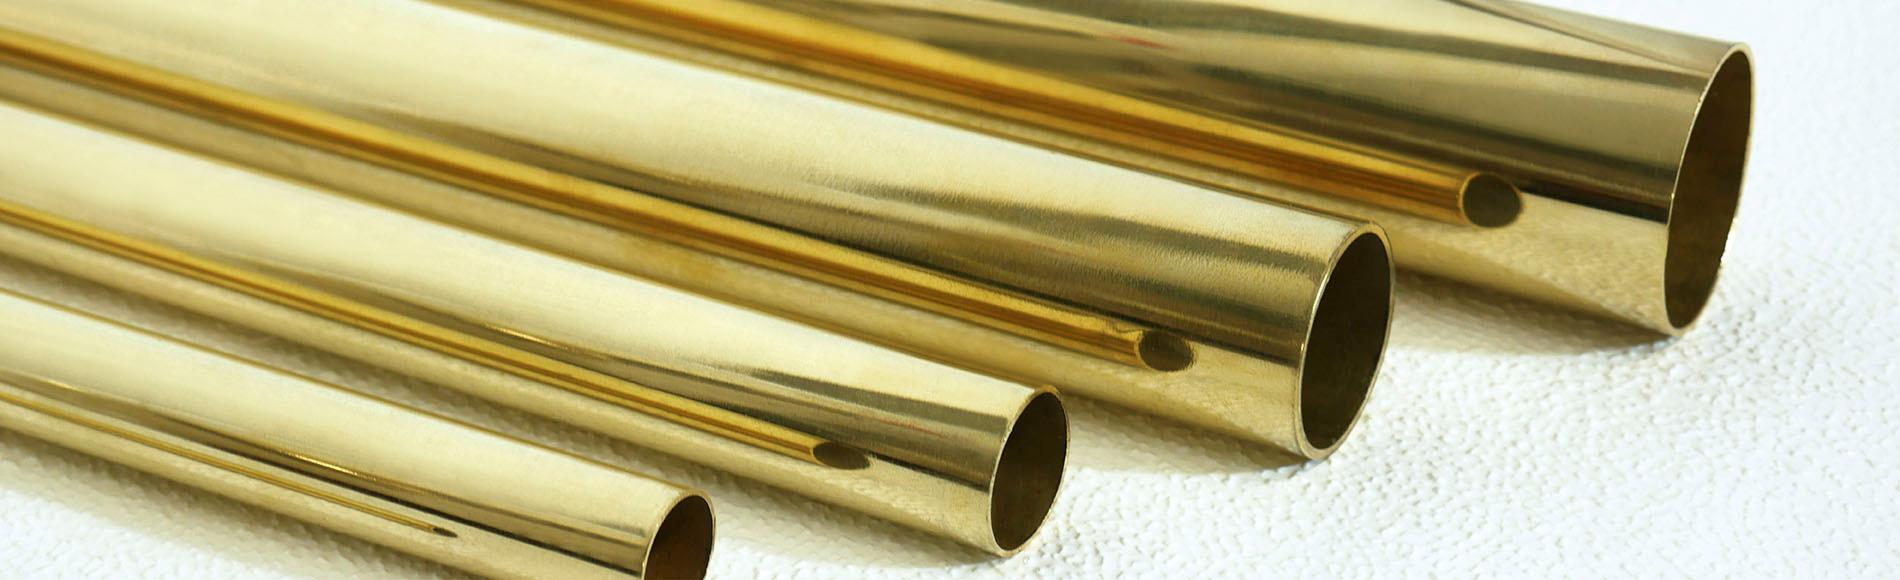 http://www.fitco.gr/userfiles/45aad4a2-7fba-4093-8a2a-a6de00bc5a0a/brass-welded-tube_1.jpg?quality=75&w=1900